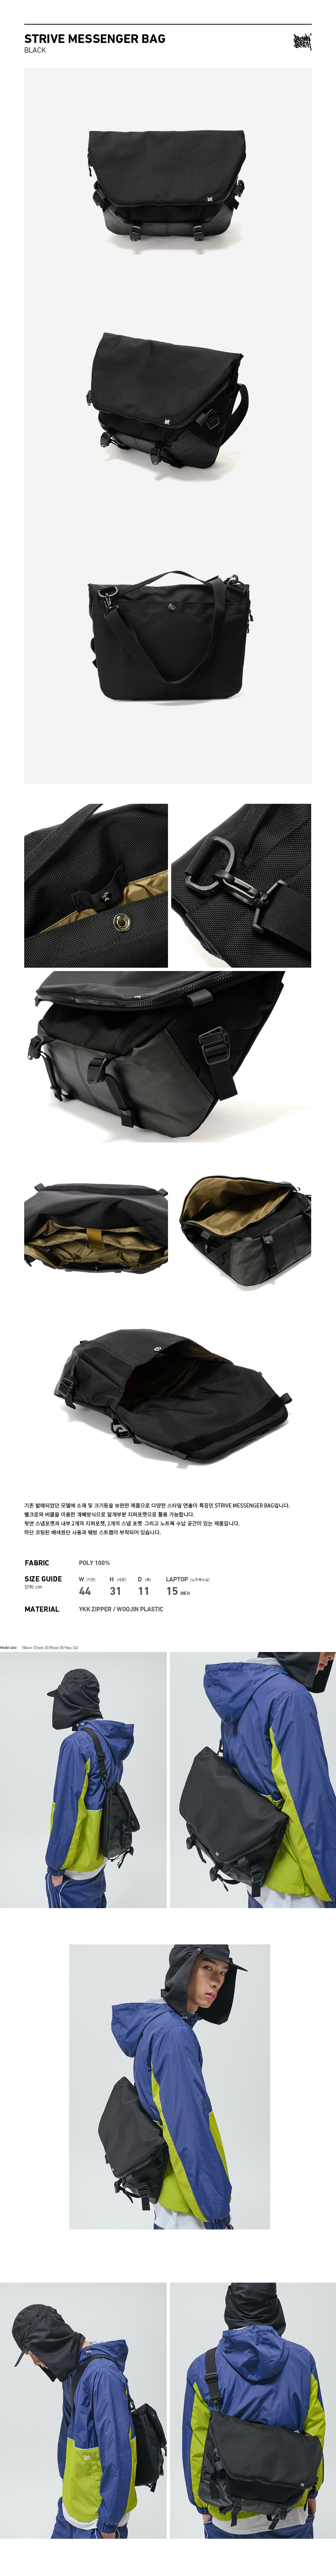 브라운브레스(BROWNBREATH) STRIVE MESSENGER BAG - BLACK